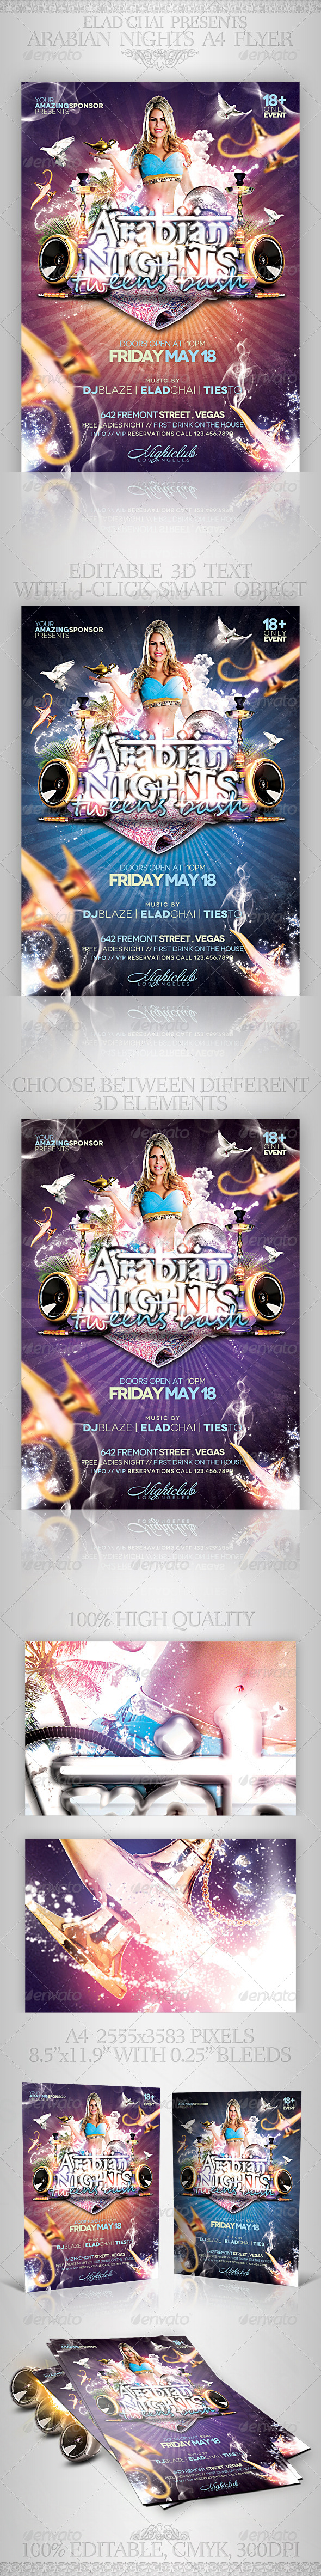 GraphicRiver Arabian Nights A4 Flyer Poster Template 4606189